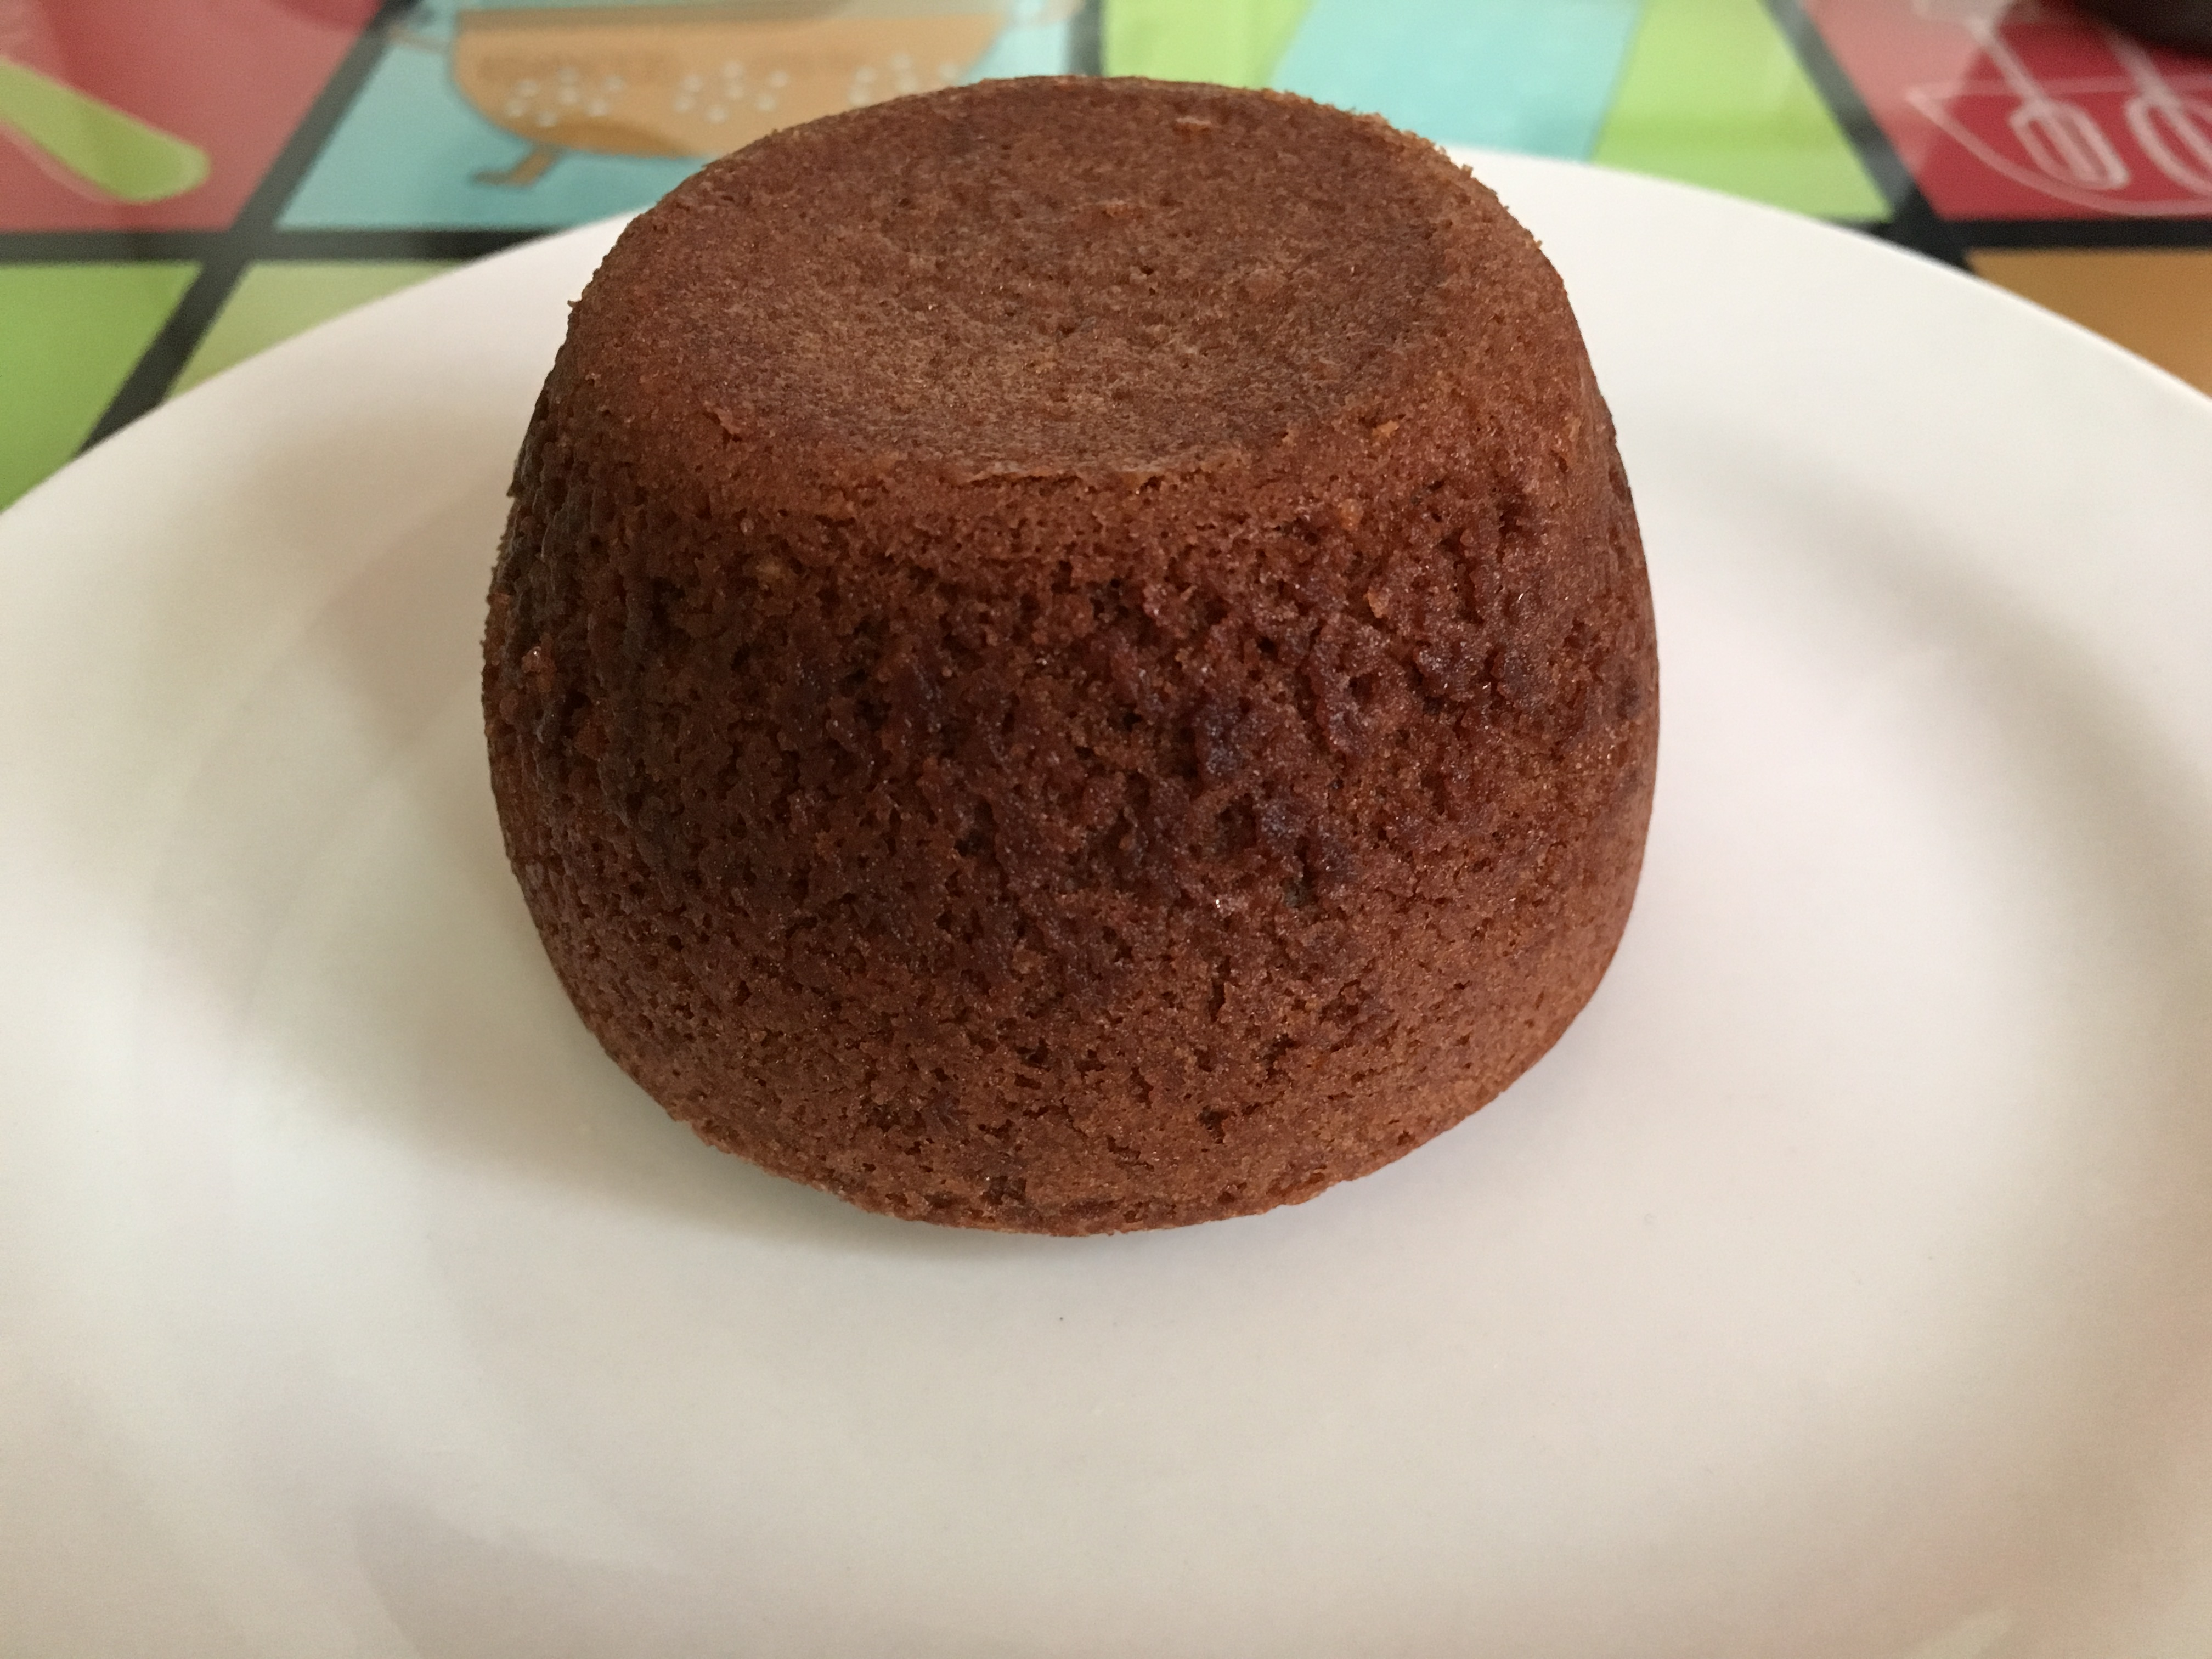 dariole moulds, chocolate fondant, recipe, quick and easy, homemade, chocolate